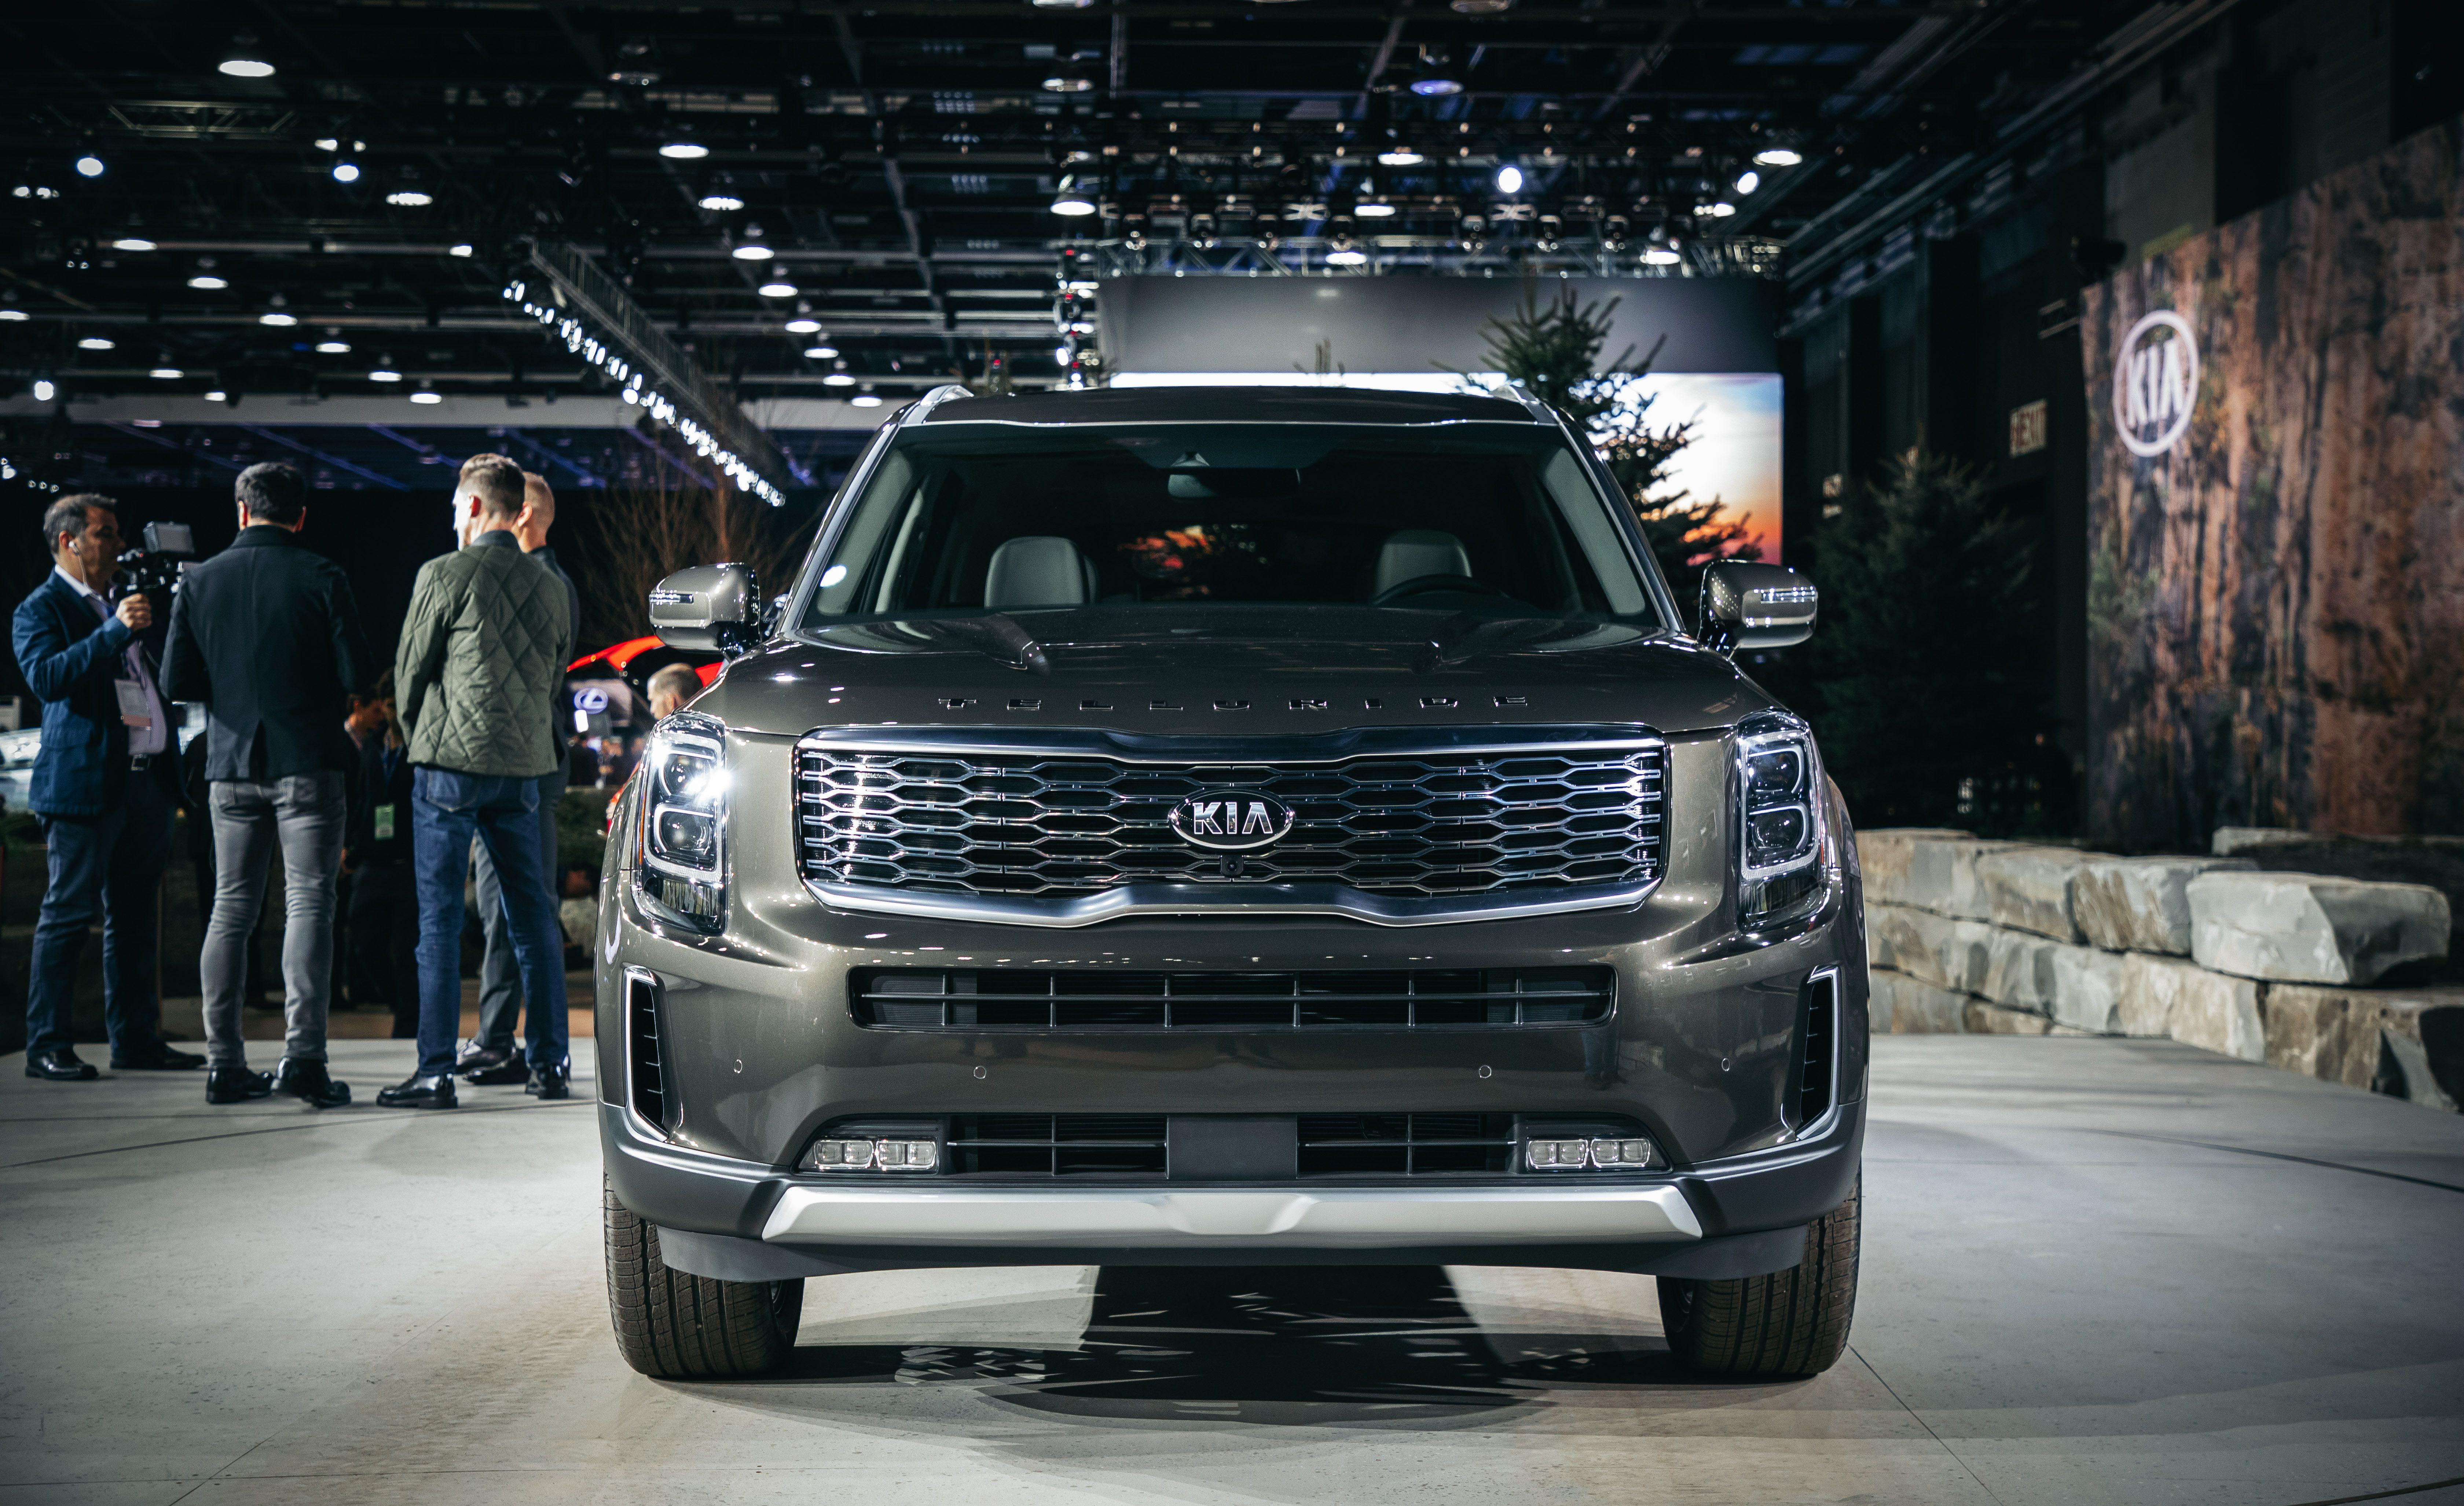 "<p>Kia already has a sizable three-row crossover geared toward American families-it's called <a href=""https://www.caranddriver.com/kia/sorento"" rel=""nofollow noopener"" target=""_blank"" data-ylk=""slk:the Sorento"" class=""link rapid-noclick-resp"">the Sorento</a>-but these days, an automaker can never have too many SUVs. Enter <a href=""https://www.caranddriver.com/news/a23031449/2020-kia-telluride-three-row-suv-photos-info/"" rel=""nofollow noopener"" target=""_blank"" data-ylk=""slk:the all-new, even bigger three-row Telluride"" class=""link rapid-noclick-resp"">the all-new, even bigger three-row Telluride</a>, which towers over the Sorento it joins in Kia's lineup. It's bolder, brasher, and more American-looking than anything Kia has ever made (the <a href=""https://www.caranddriver.com/reviews/a15147941/2009-kia-borrego-ex-short-take-road-test/"" rel=""nofollow noopener"" target=""_blank"" data-ylk=""slk:body-on-frame Borrego SUV"" class=""link rapid-noclick-resp"">body-on-frame Borrego SUV</a> included), and it debuted, fittingly, at <a href=""https://www.caranddriver.com/auto-shows/detroit-auto-show-news-reveals"" rel=""nofollow noopener"" target=""_blank"" data-ylk=""slk:the 2019 Detroit auto show"" class=""link rapid-noclick-resp"">the 2019 Detroit auto show</a> right in the American Big Three's back yard. At first blush, <a href=""https://www.caranddriver.com/kia/telluride"" rel=""nofollow noopener"" target=""_blank"" data-ylk=""slk:the Telluride"" class=""link rapid-noclick-resp"">the Telluride</a>'s look might look vaguely familiar (we initially likened it loosely to GMC's Yukon), but we had Kia's chief U.S. designer Tom Kearns walk us through the SUV's ""clean, pure, minimalistic"" style and the flourishes that help it stand apart. The man has led Kia's Irvine, California, design studio for 14 years-that's longer than half of Kia's existence in the American market-and is a big contributor to the brand's shedding of its bargain-basement image. </p>"